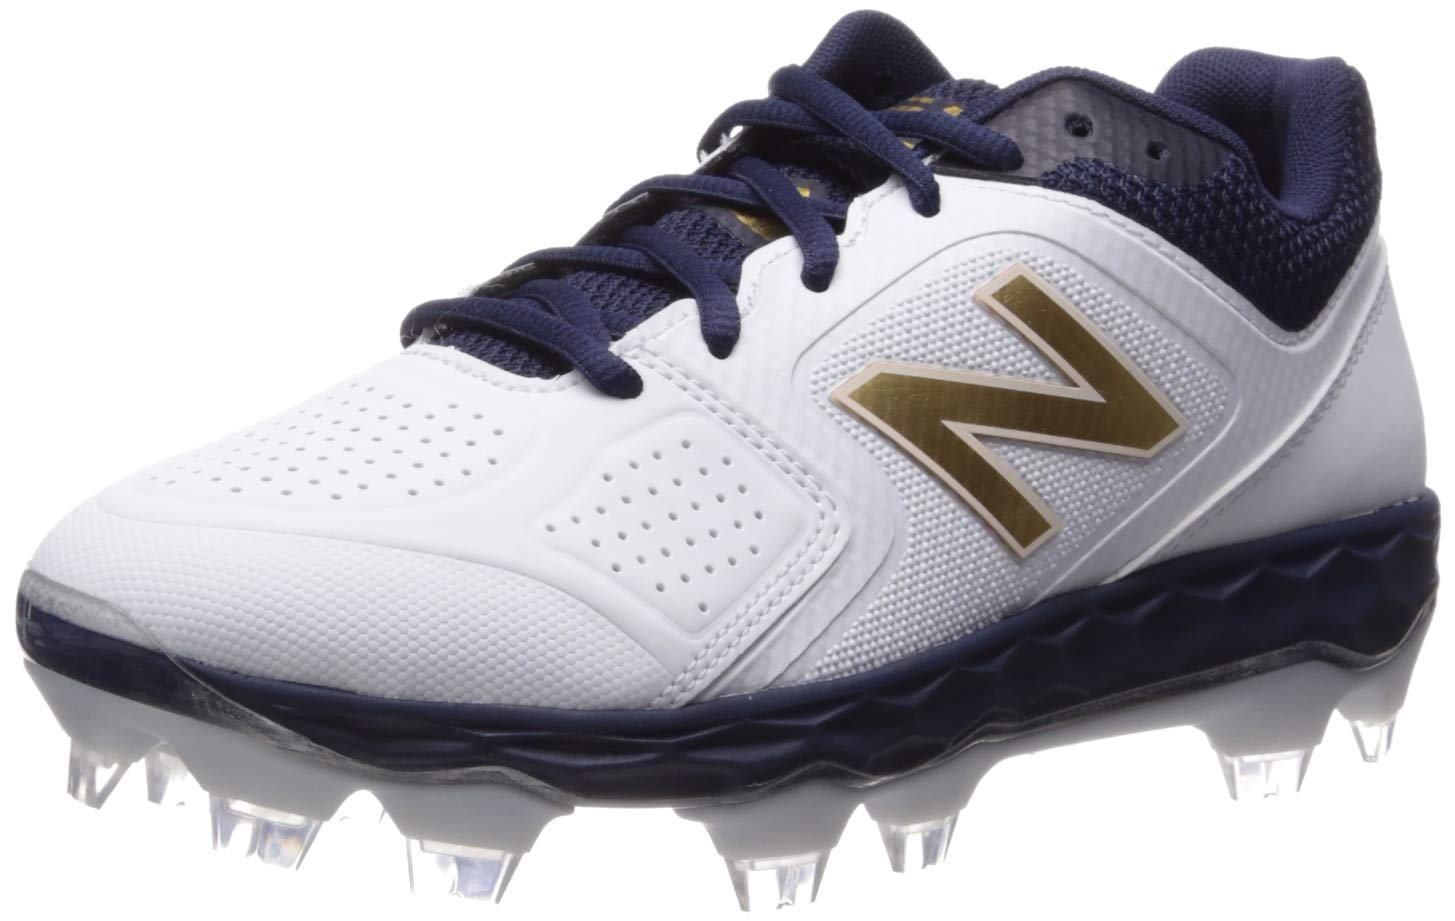 New Balance Women's Velo V1 Molded Baseball Shoe, Navy/White, 6 D US by New Balance